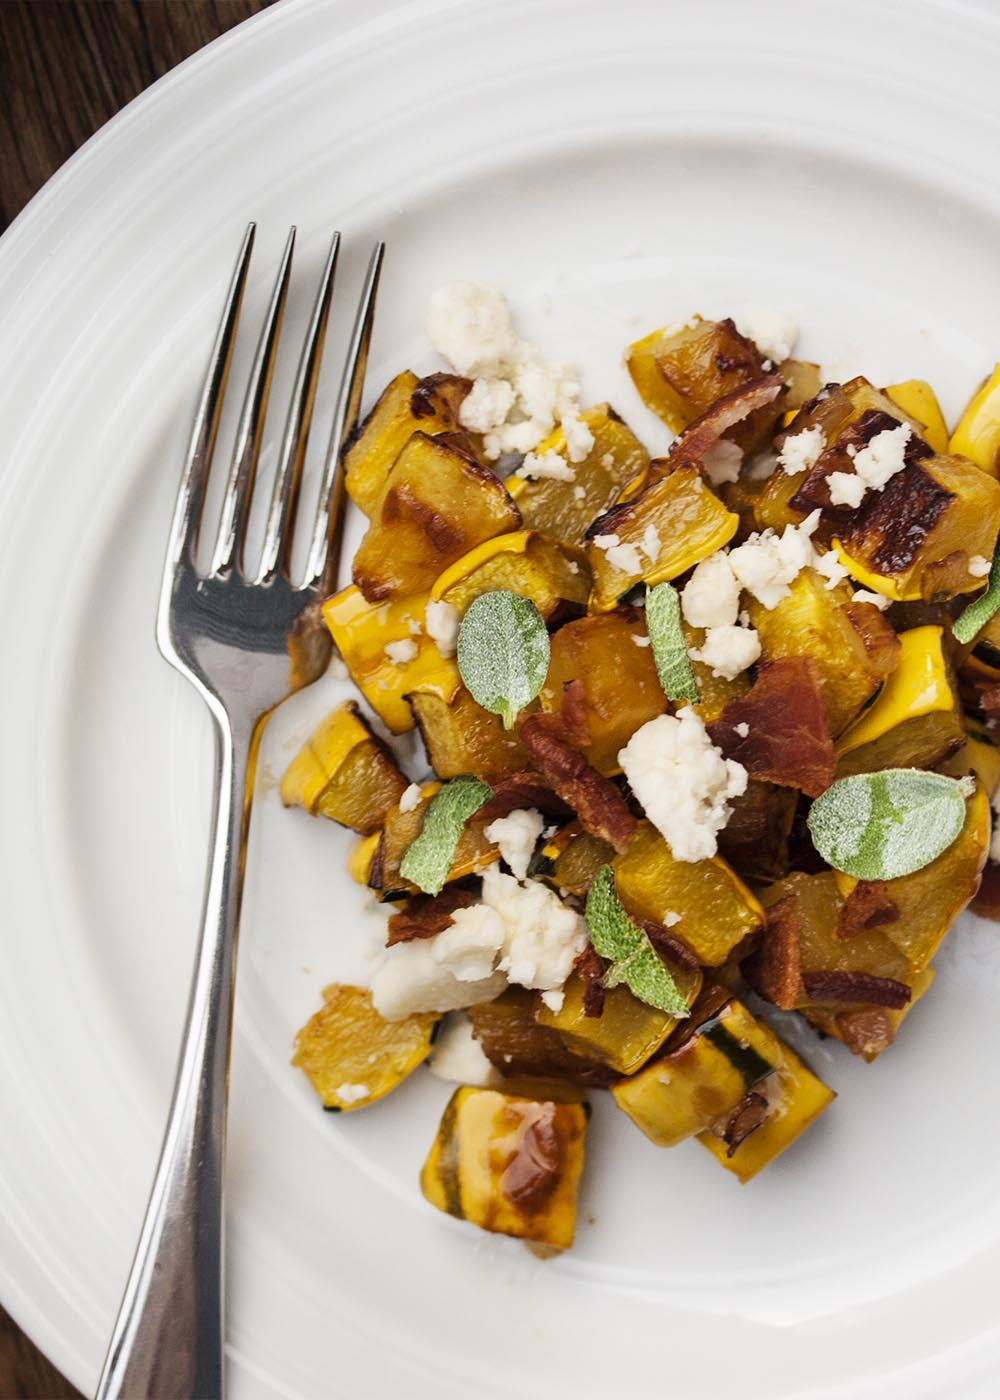 Delicata Squash With Bacon and Blue Cheese - Delicata squash is roasted and then tossed with bacon, blue cheese, and sage. I love it as a fall or Thanksgiving side dish. | justalittlebitofbacon.com